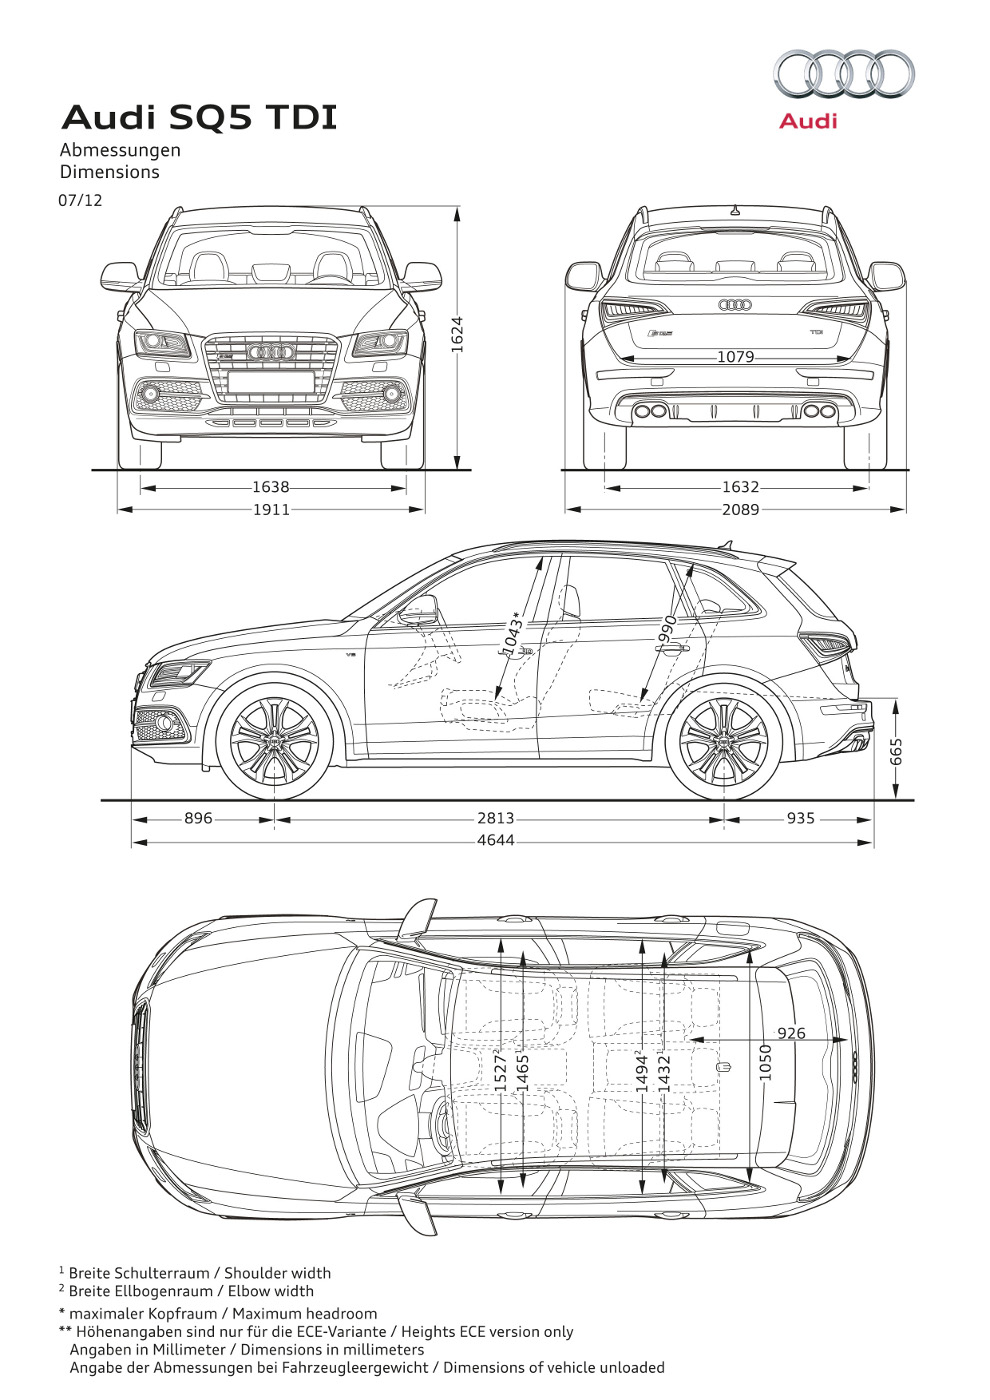 Porsche 997 Turbo Alba Chiara as well  as well News furthermore Marchi as well Logotipos De Las Marcas De Coches Cadillac. on porsche seat